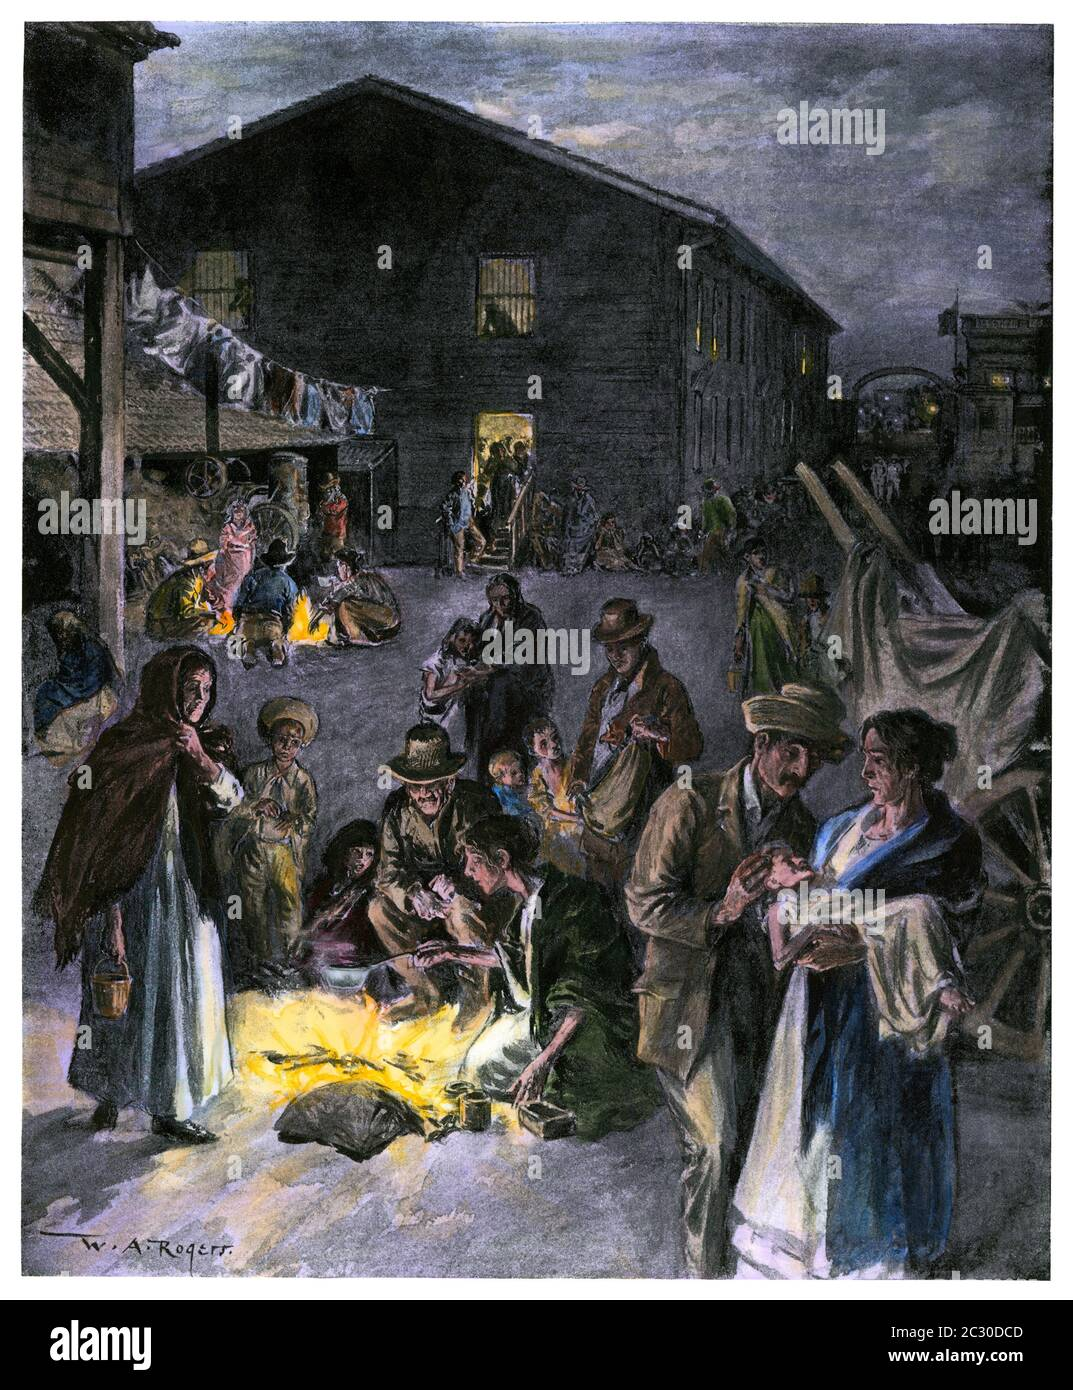 Los Fosos section of Havana sheltering refugees, Spanish-American War, 1898. Hand-colored halftone of a W.A. Rogers illustration Stock Photo